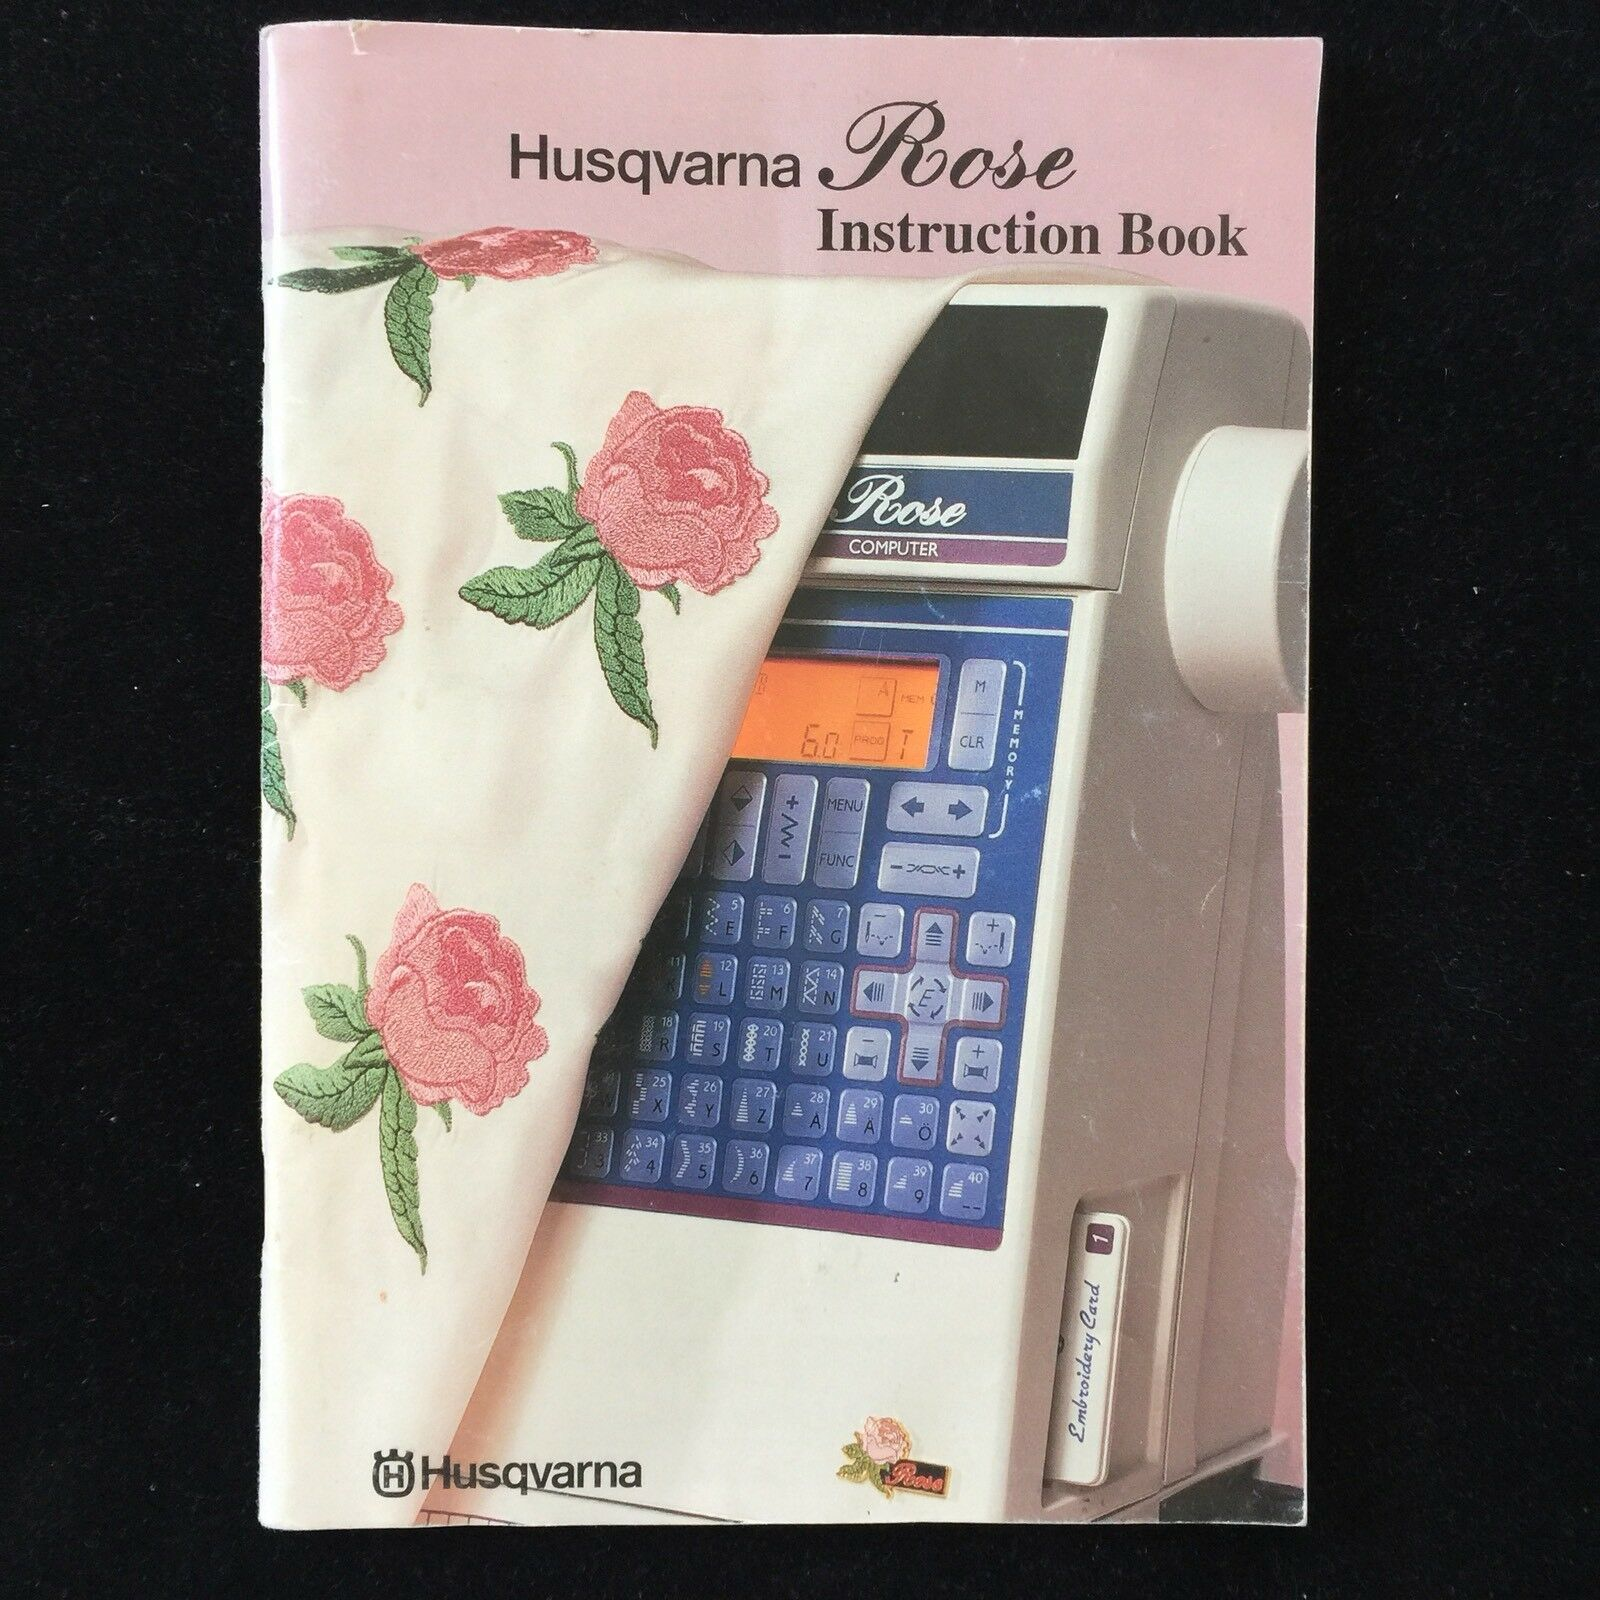 Husqvarna Viking Instruction Book Manual for Rose Sewing Embroidery Machine  1 of 5Only 2 available ...